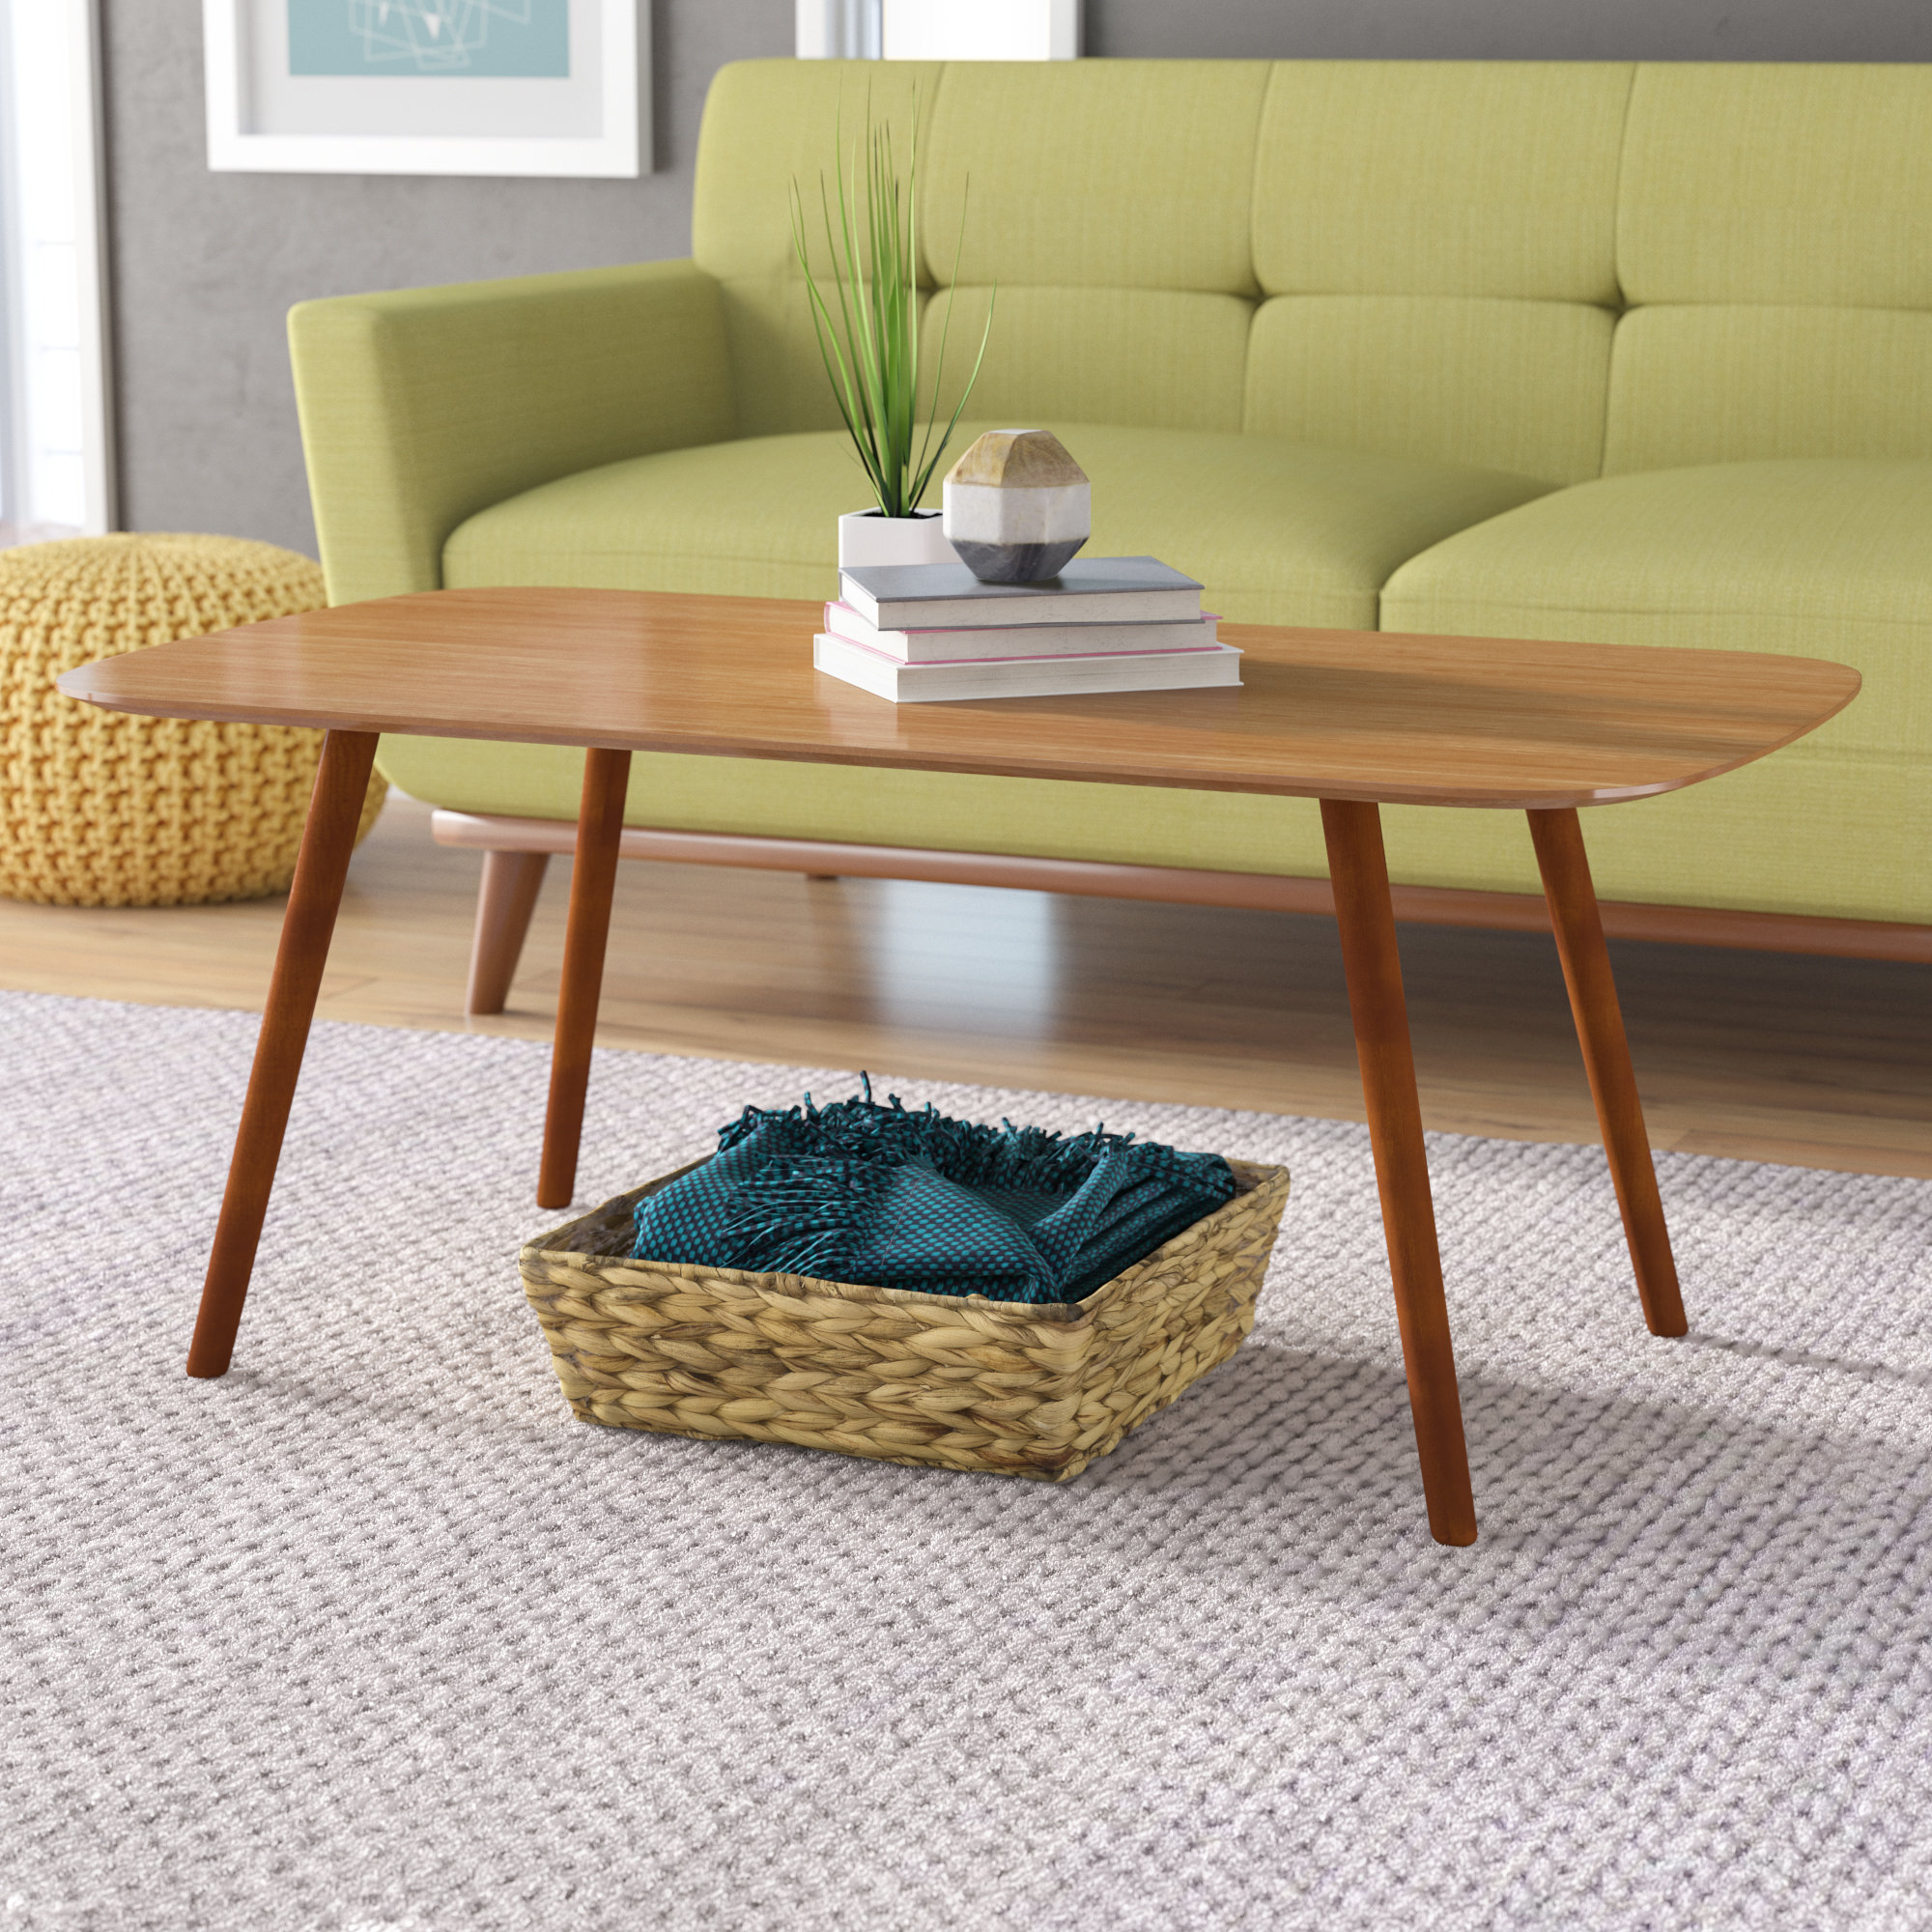 Popular Langley Street Creenagh Coffee Table & Reviews (Gallery 13 of 20)